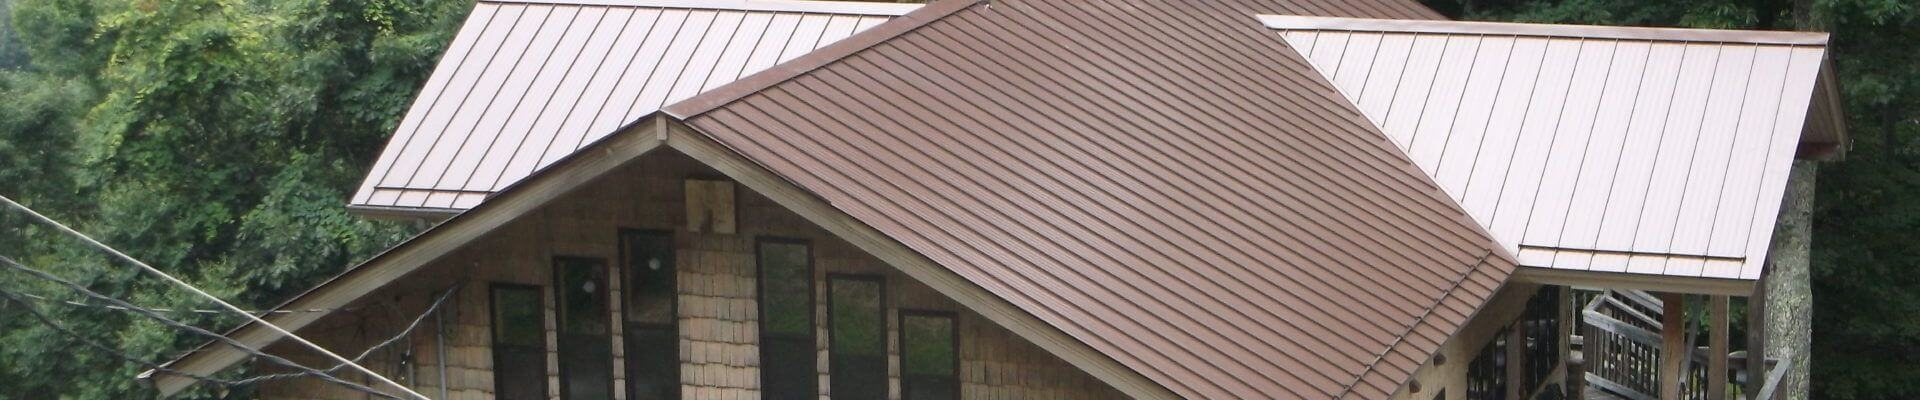 Asheville Roofing Company